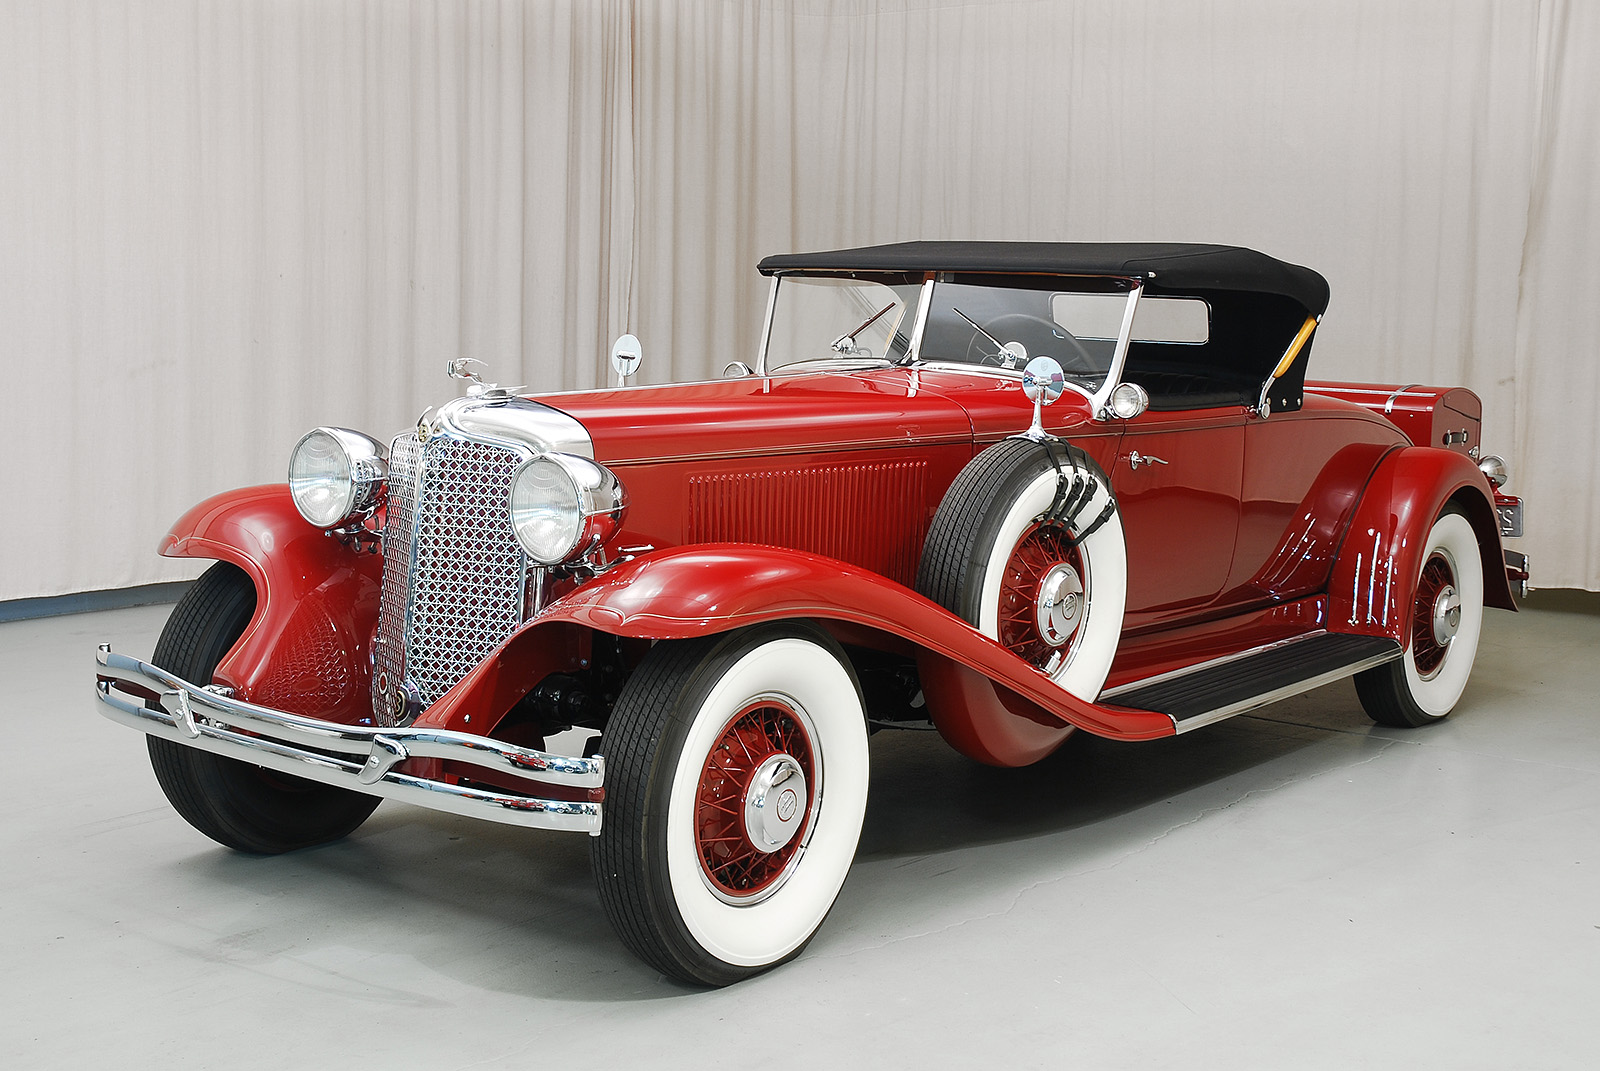 1931 Chrysler CG Imperial Roadster | Hyman Ltd. Classic Cars